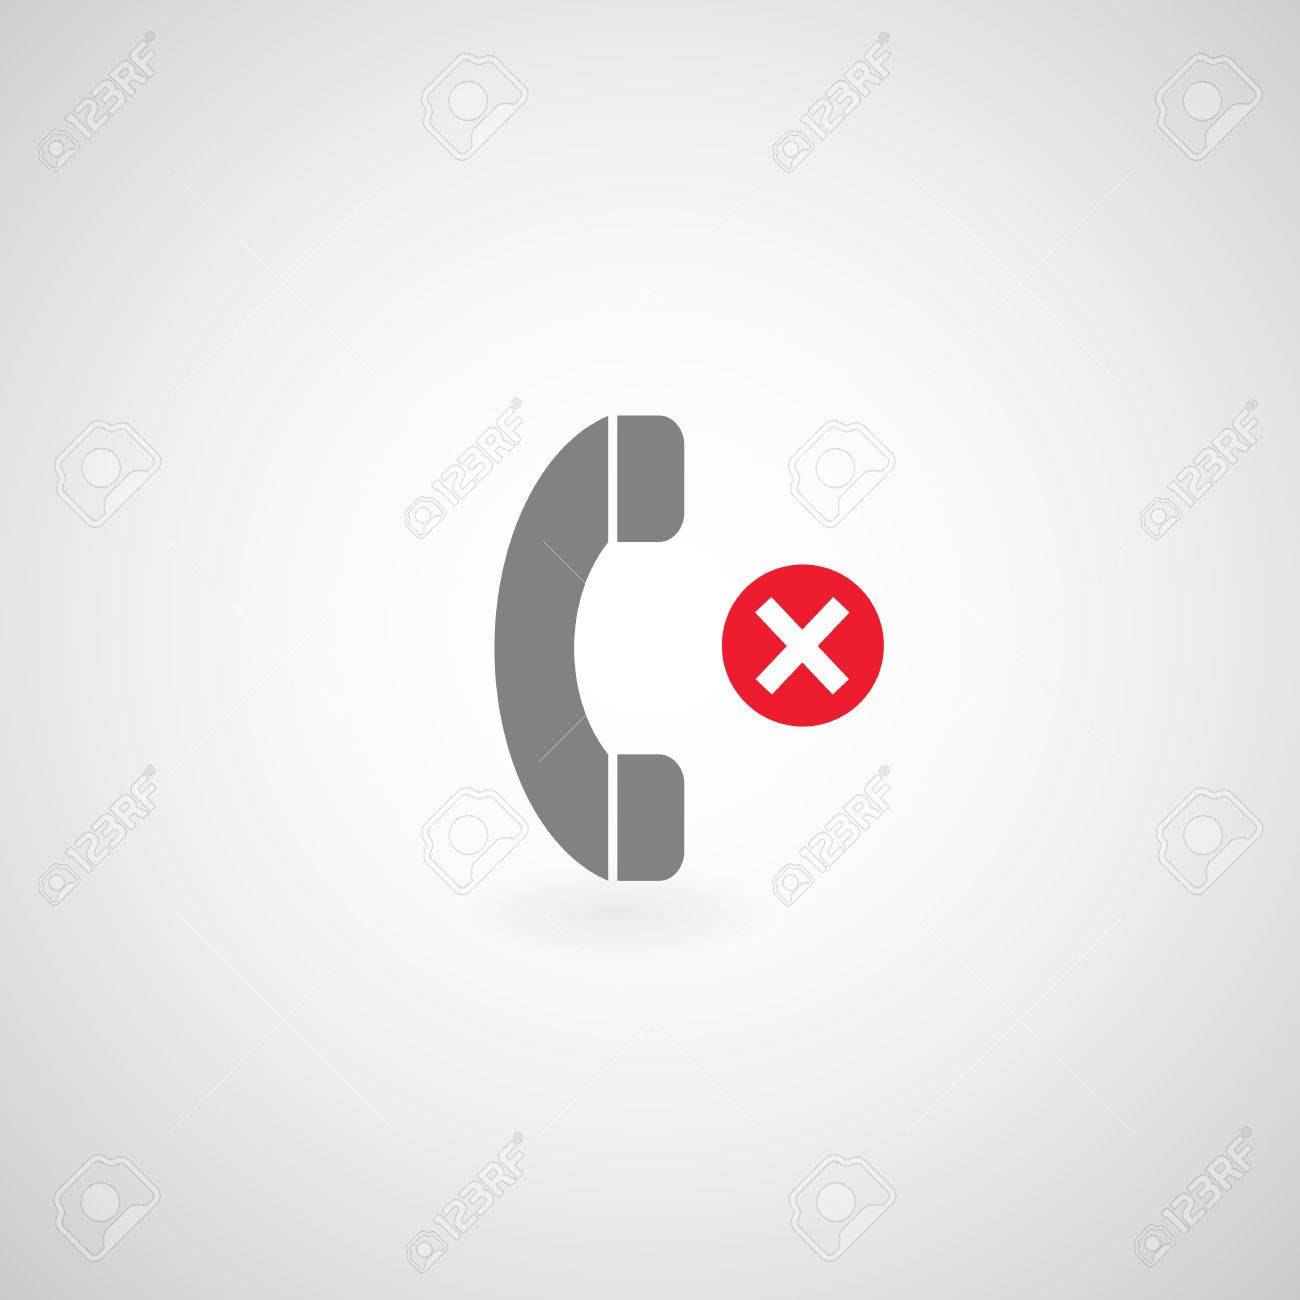 phone symbol on gray background Stock Vector - 24474579